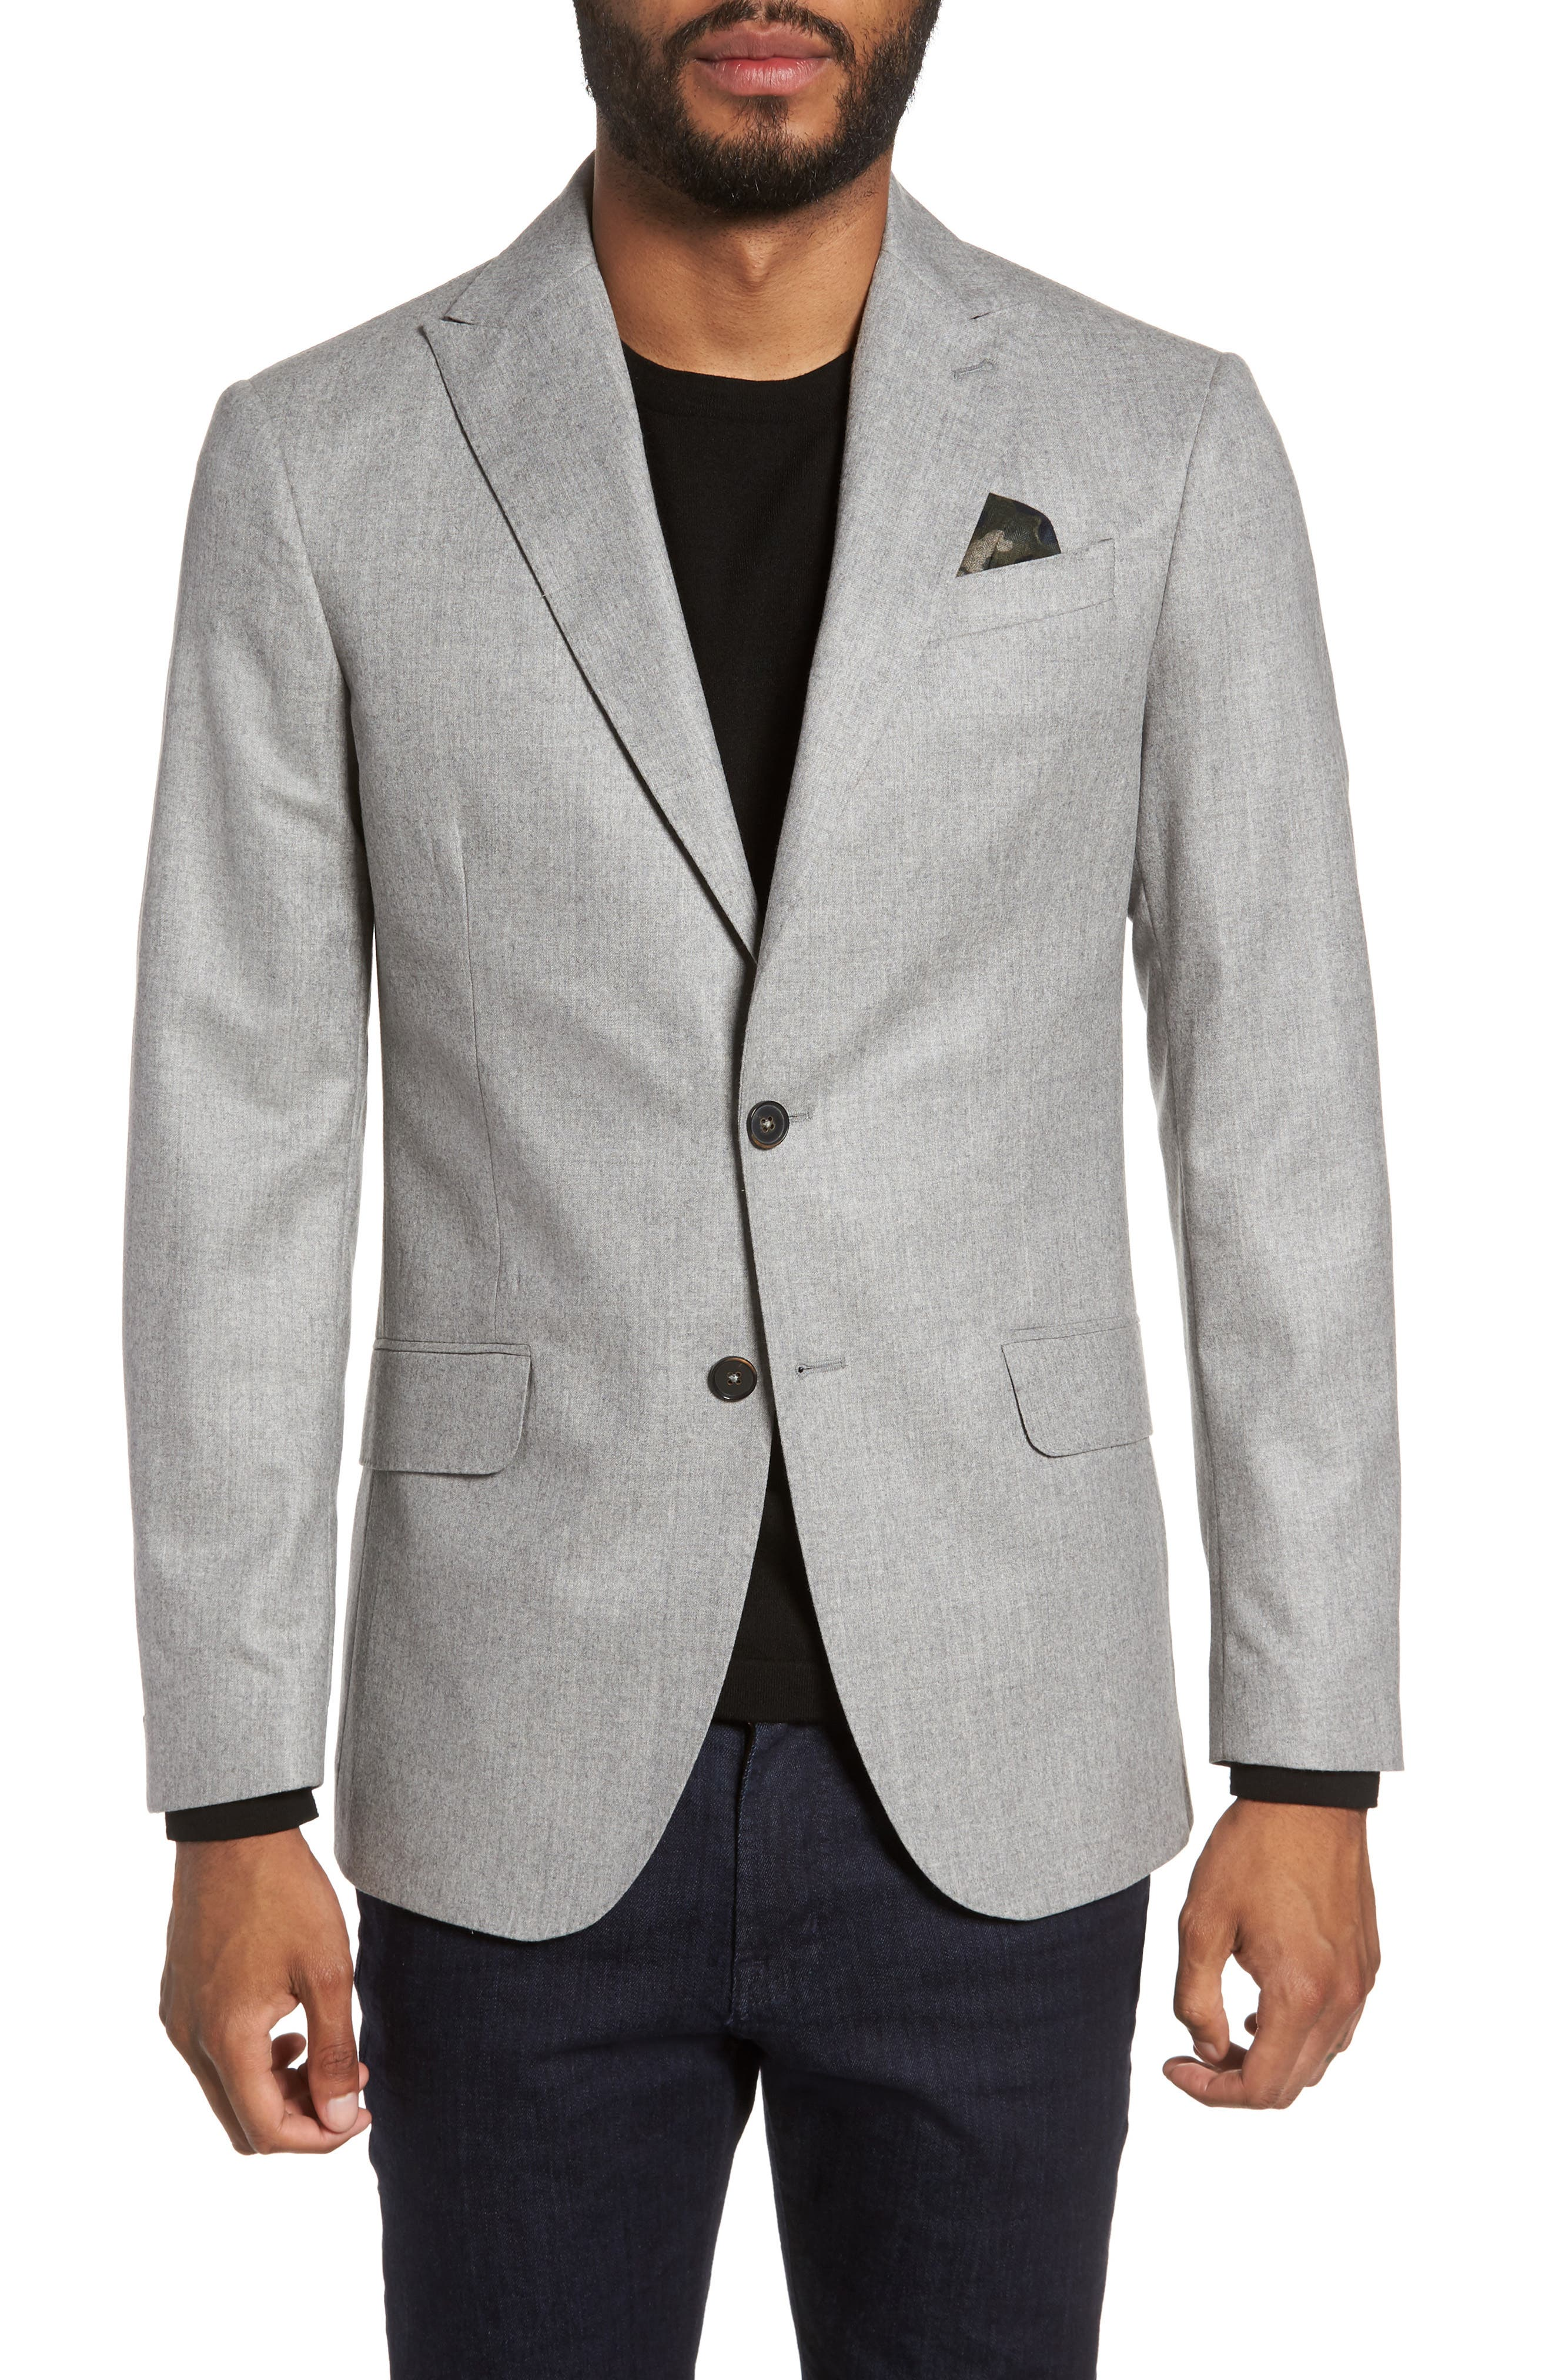 Betong Trim Fit Wool Blazer,                             Main thumbnail 1, color,                             Silver Filigree